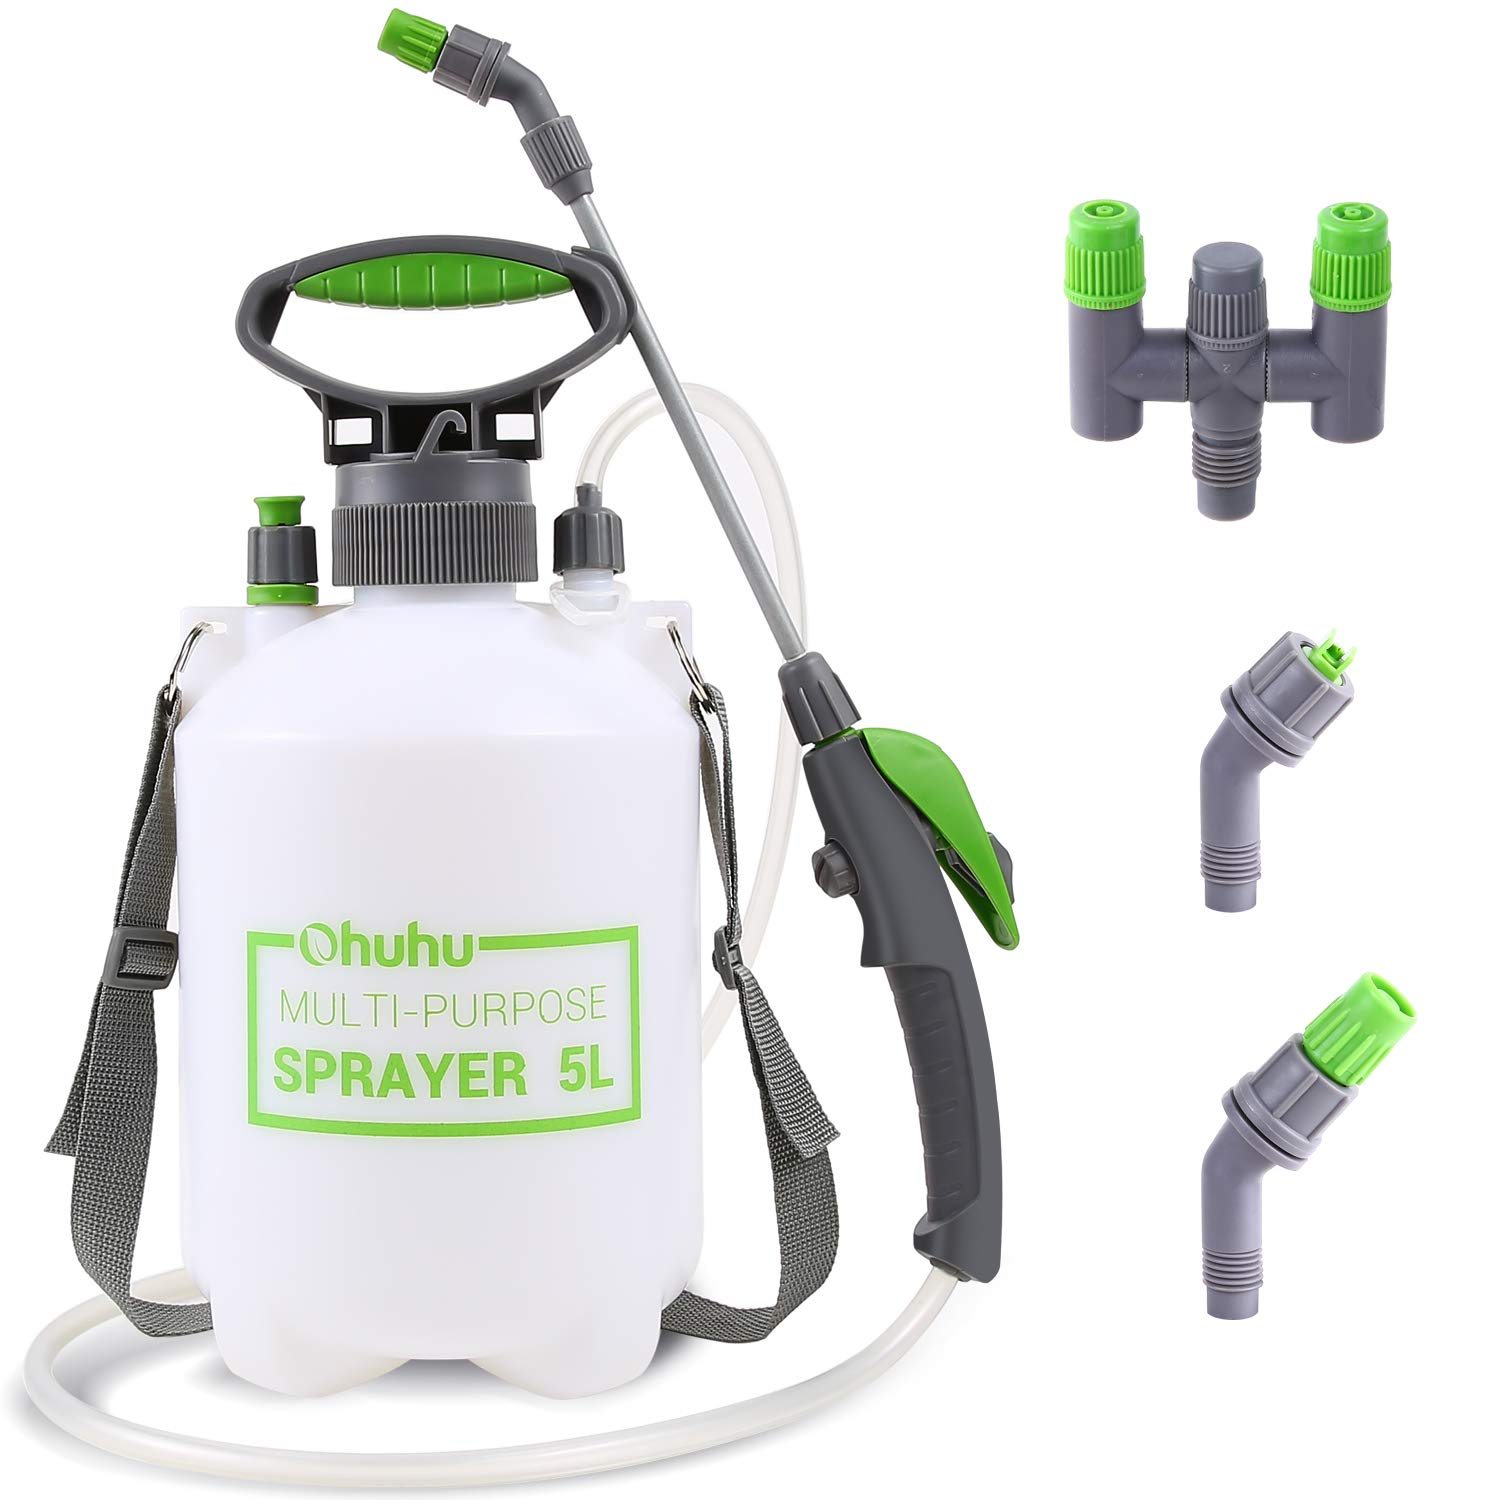 Ohuhu 1.3 Gallon/5L Lawn and Garden Pump Pressure Sprayer with 2 Different Nozzles, Pressure Relief Valve & Adjustable Shoulder Strap for Fertilizers, Mild, Solvent-Free Solutions